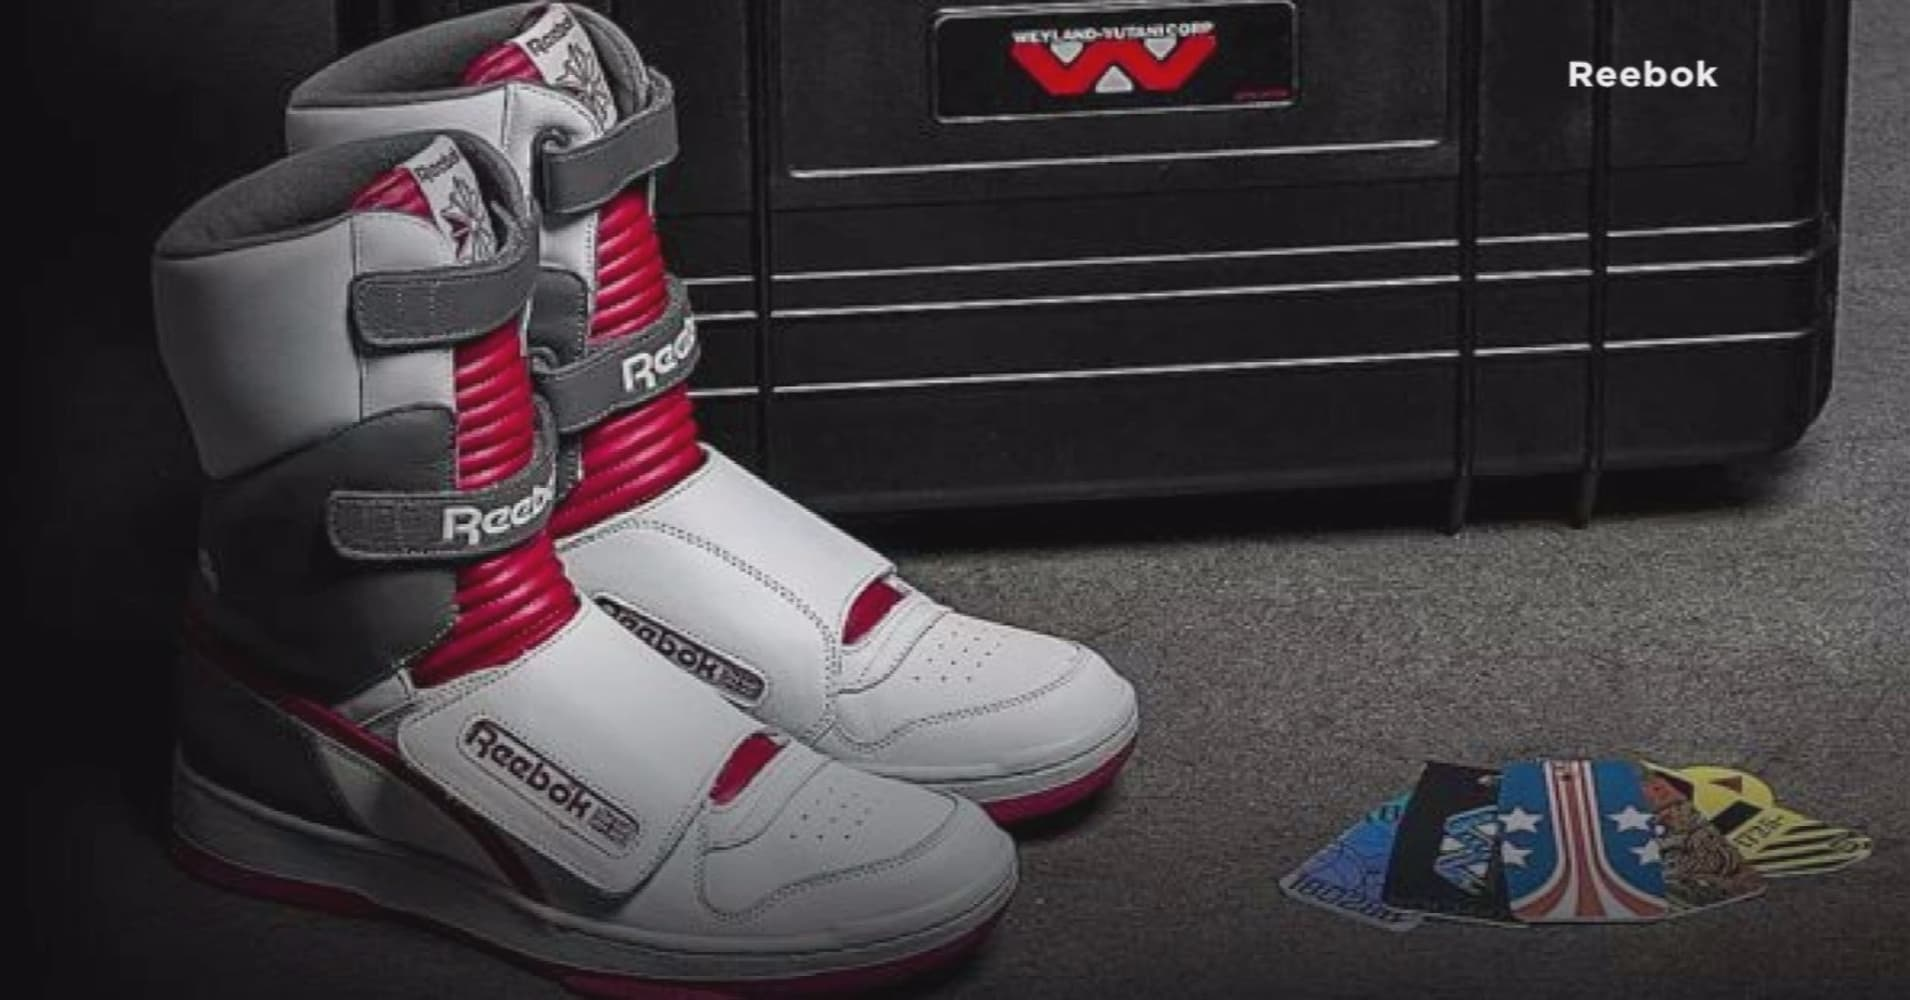 Reebok Alien Stomper shoes release hitting snags fce44e6ea